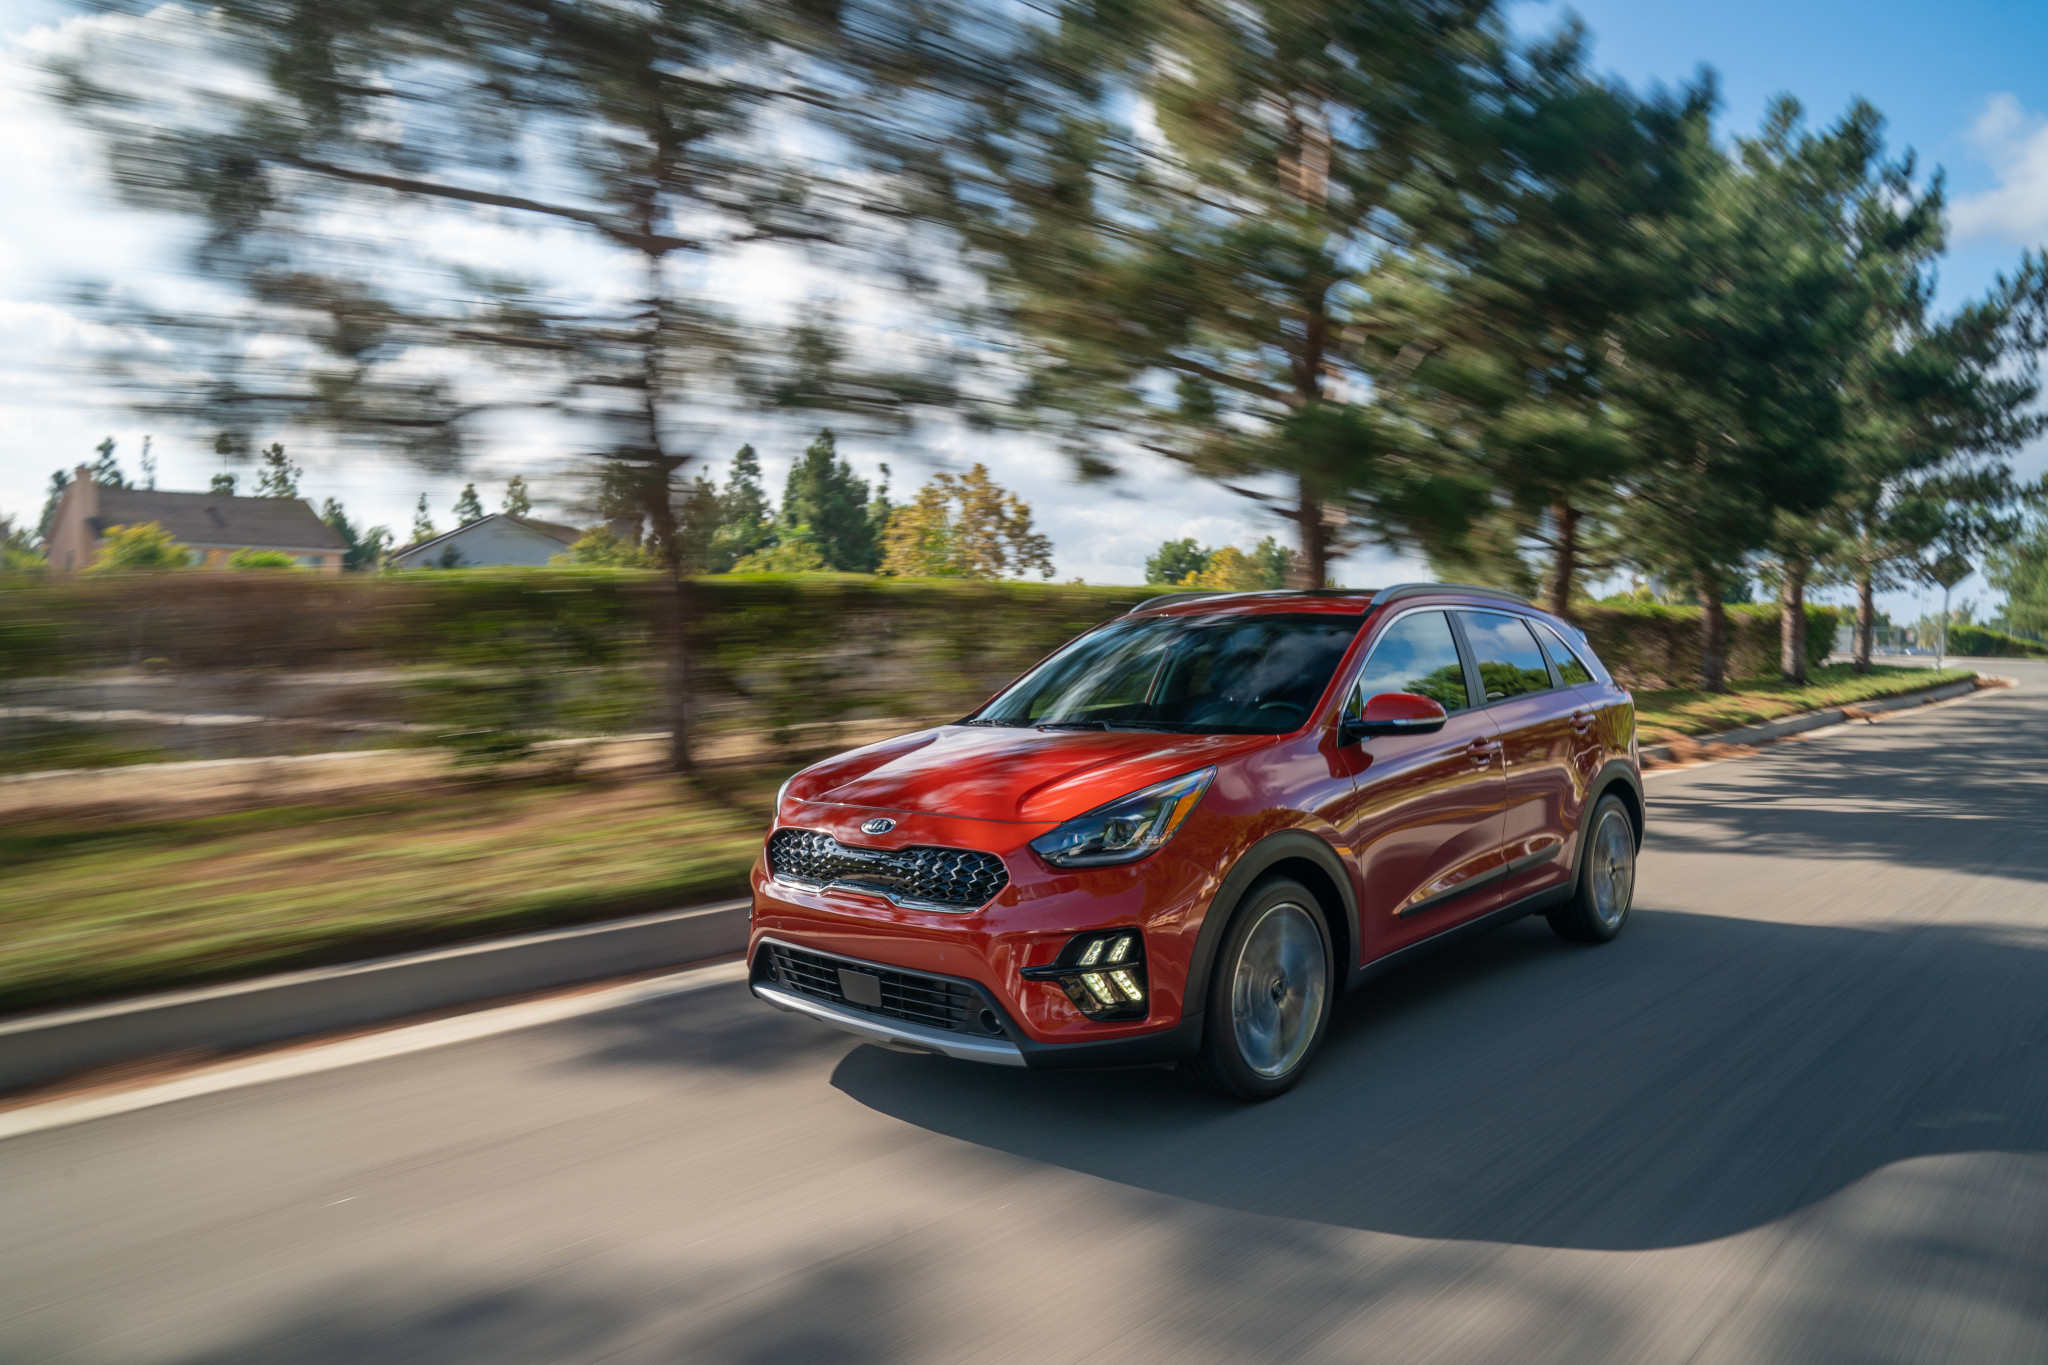 2020 Kia Niro Gets Freshened-Up Face, Telluride Tech